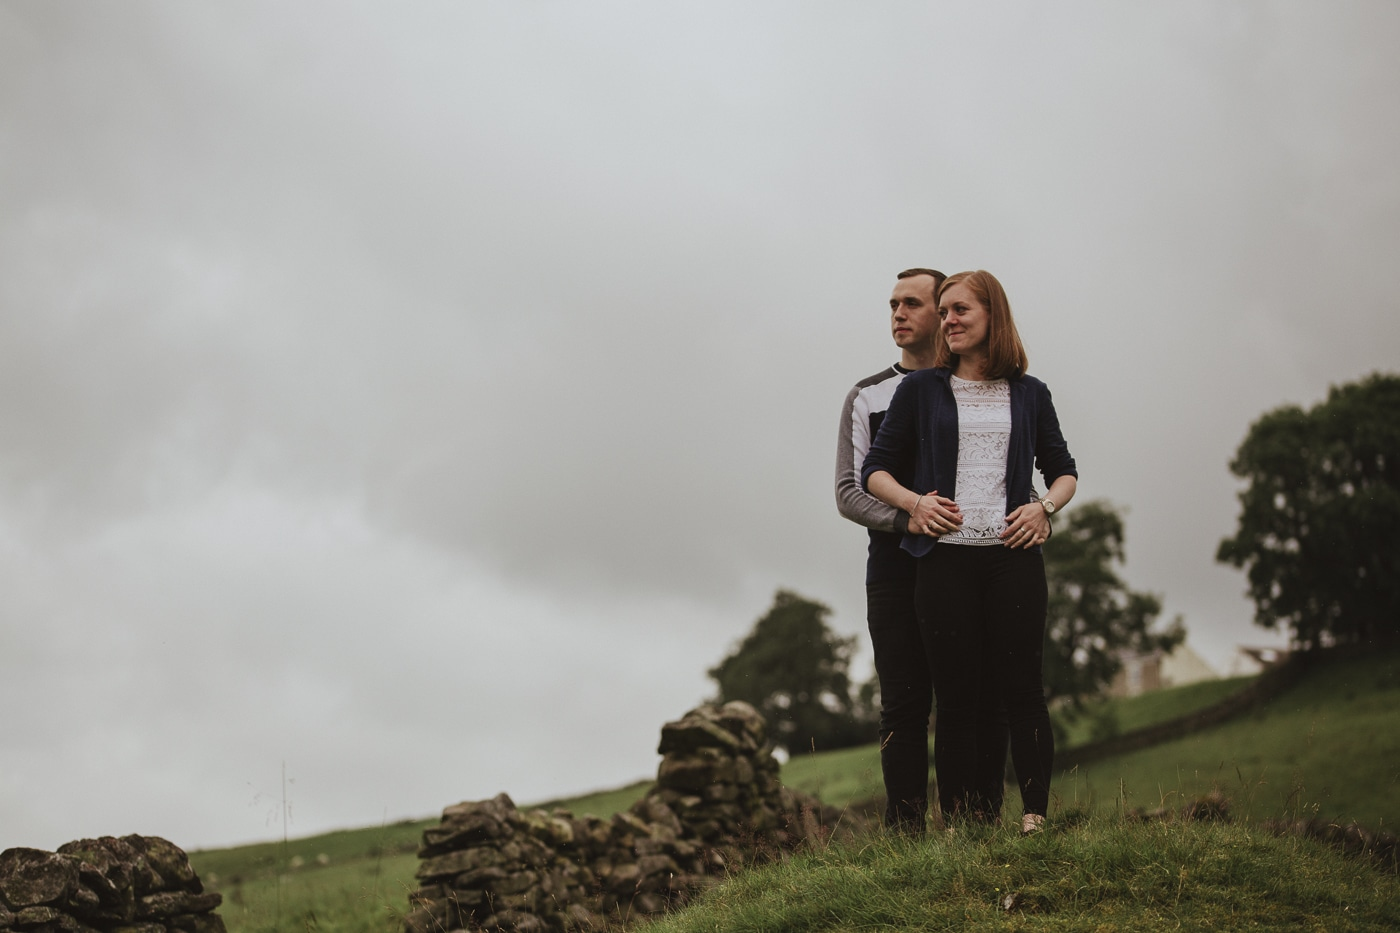 Boyfriend hold his girlfriend in a couple portrait session in the cumbrian landscape